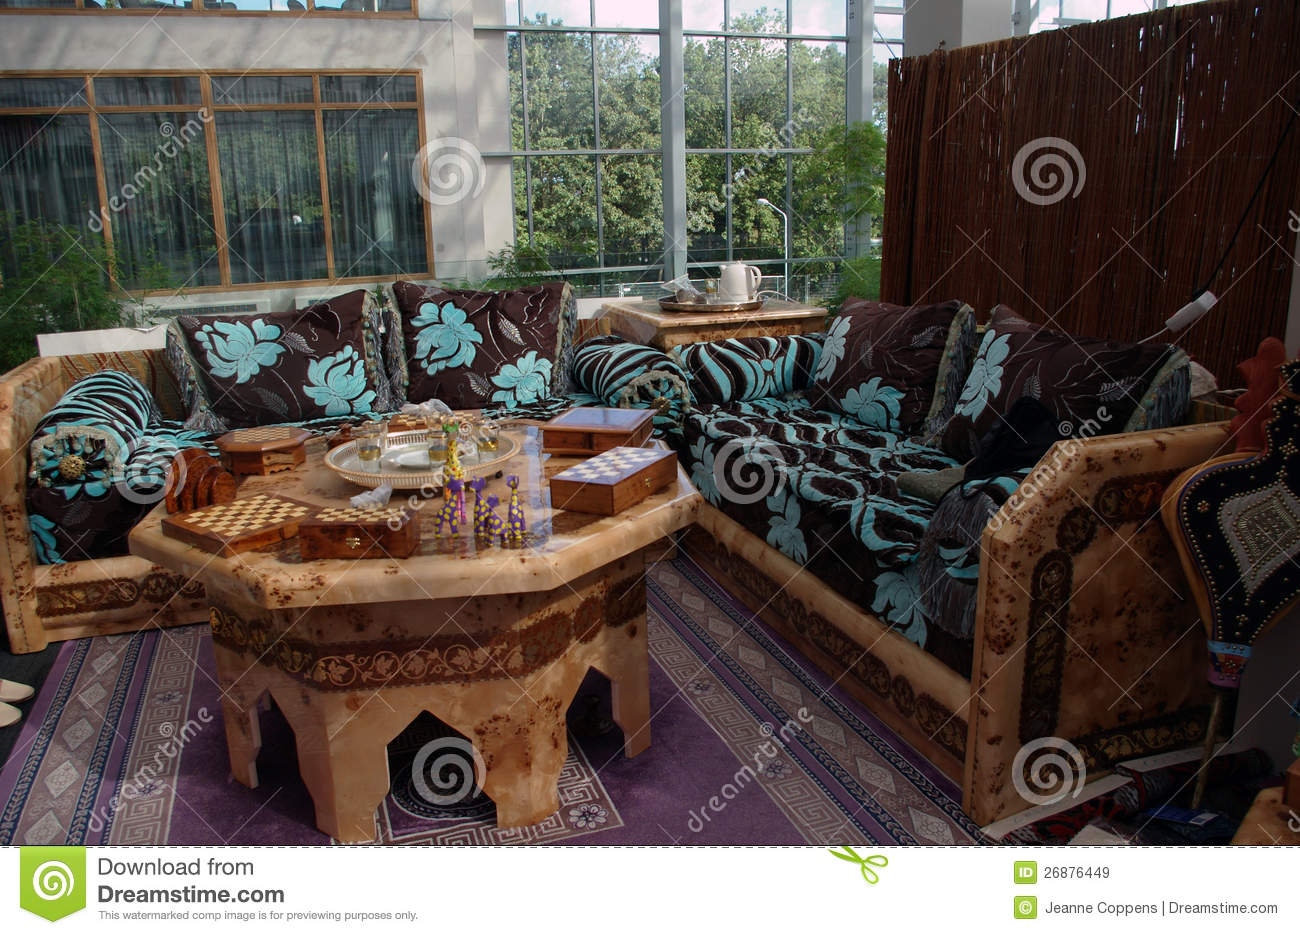 Moroccan Living Room moroccan living room interior royalty free stock images - image